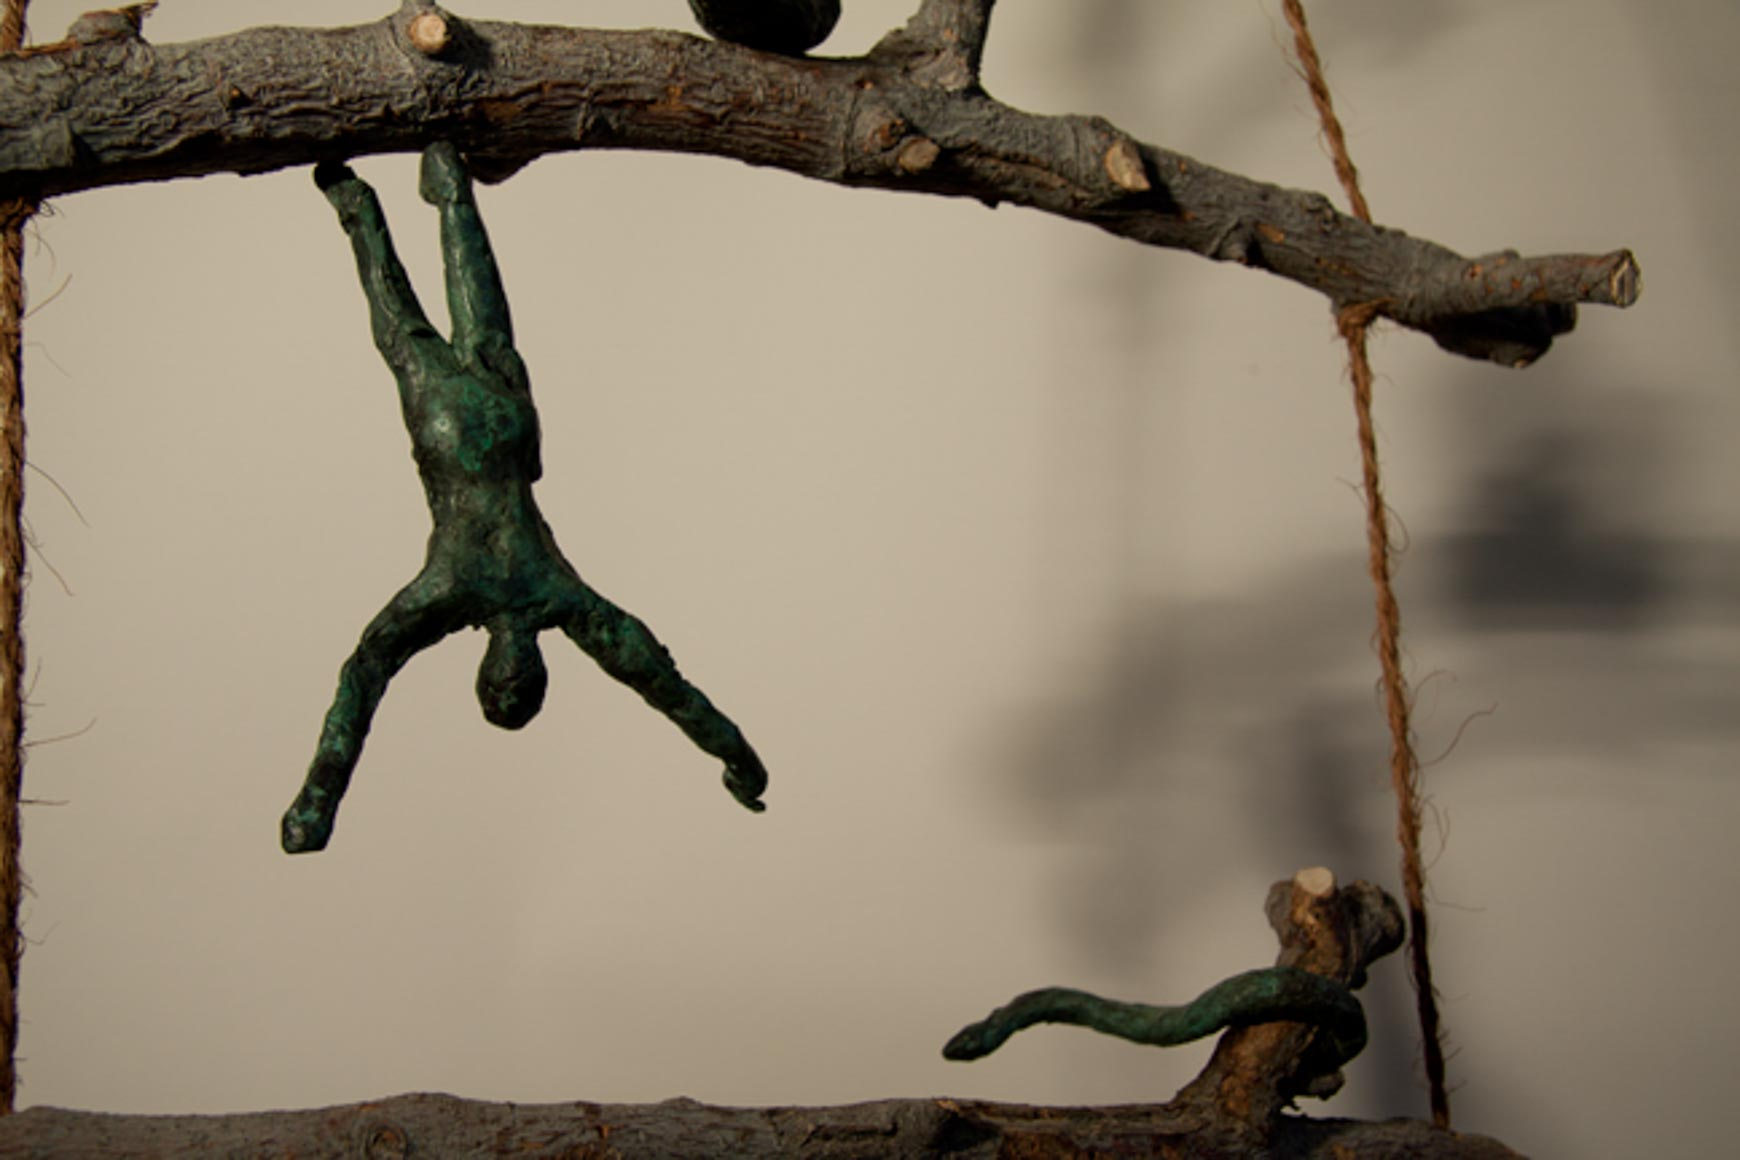 Detail from Apple Ladder: Sculpture LH (She's actually offering an apple to the snake)